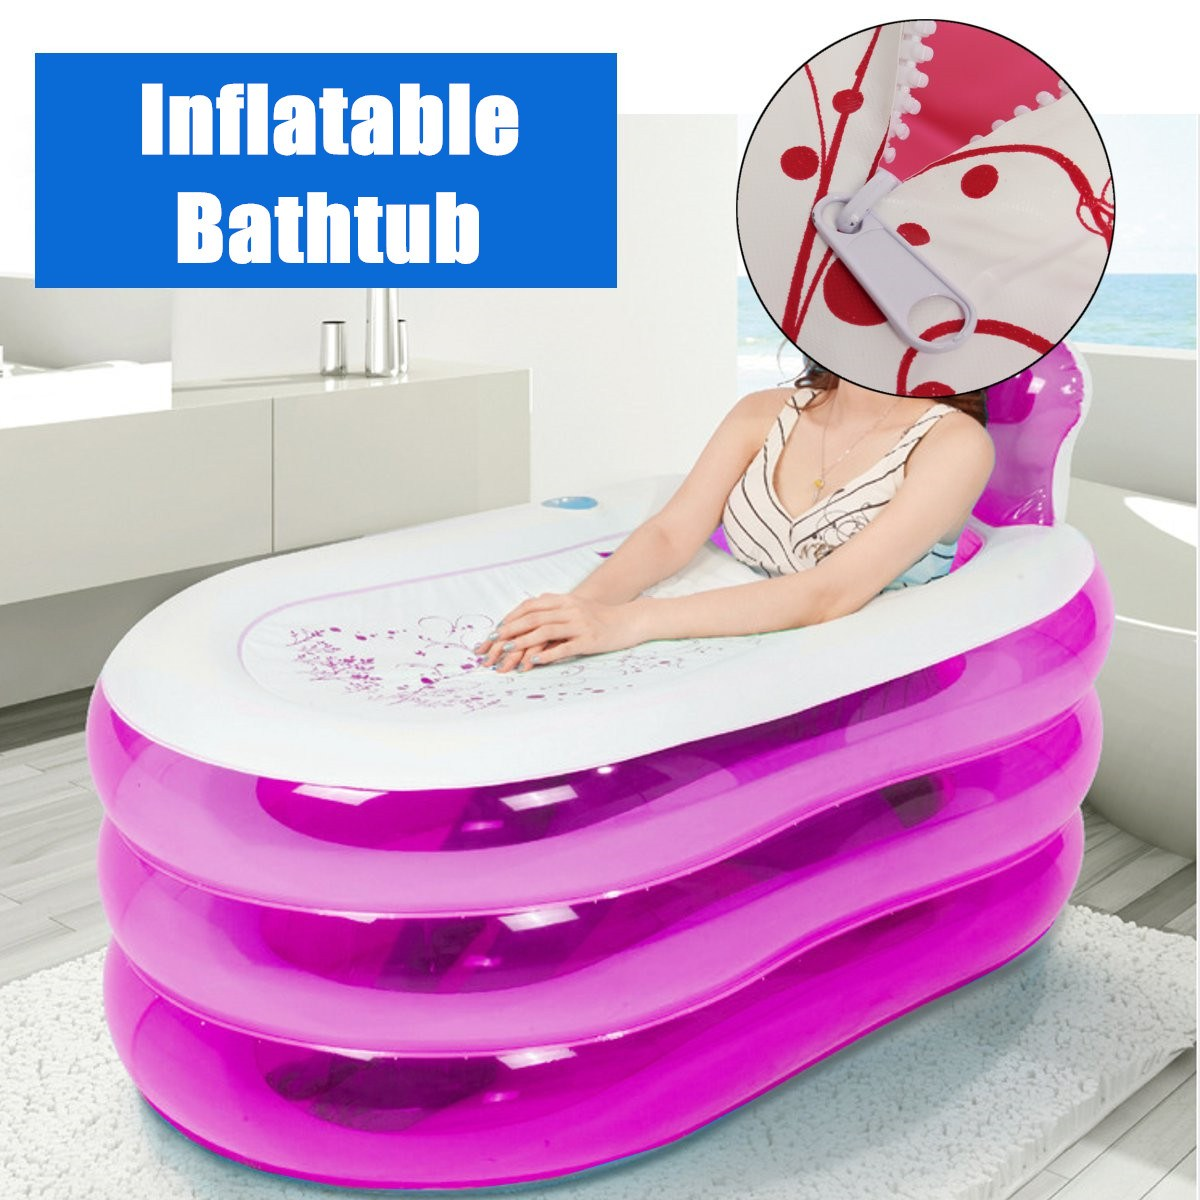 Inflatable Bathtub Adult PVC Folding Portable Steam Spa Sauna Bath tub bathtub Home hot tub ...